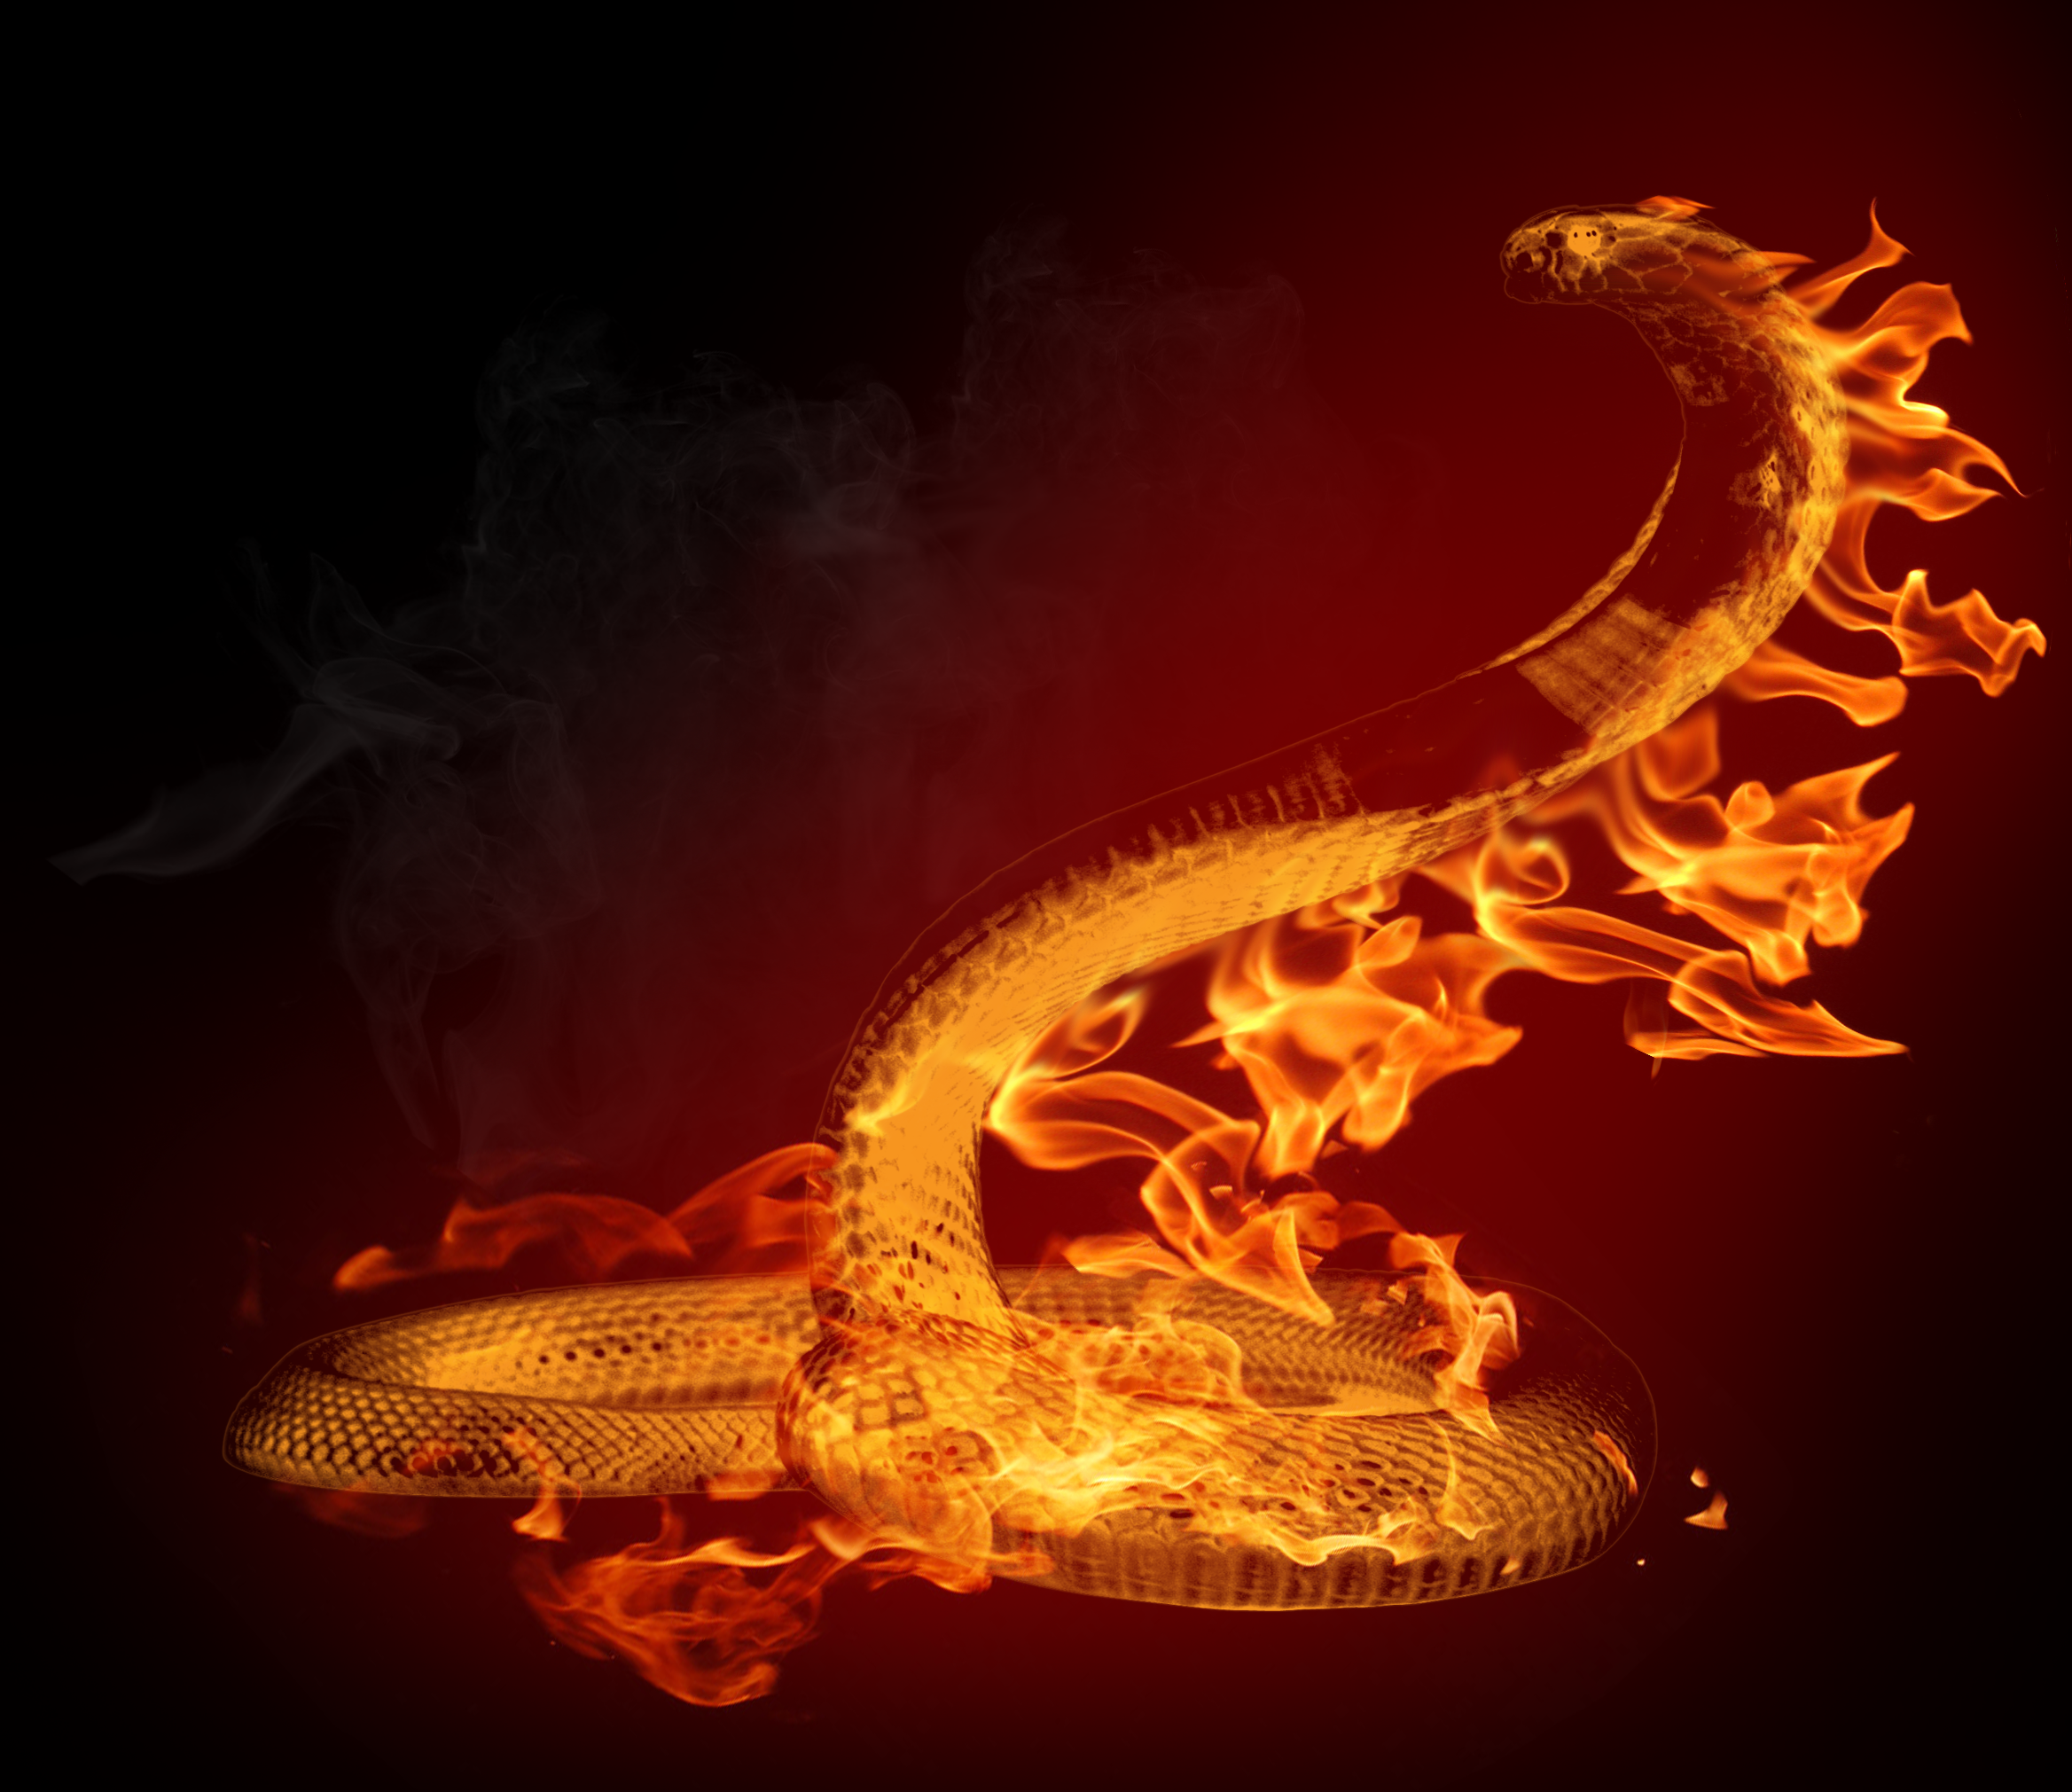 fire vs water wallpaper